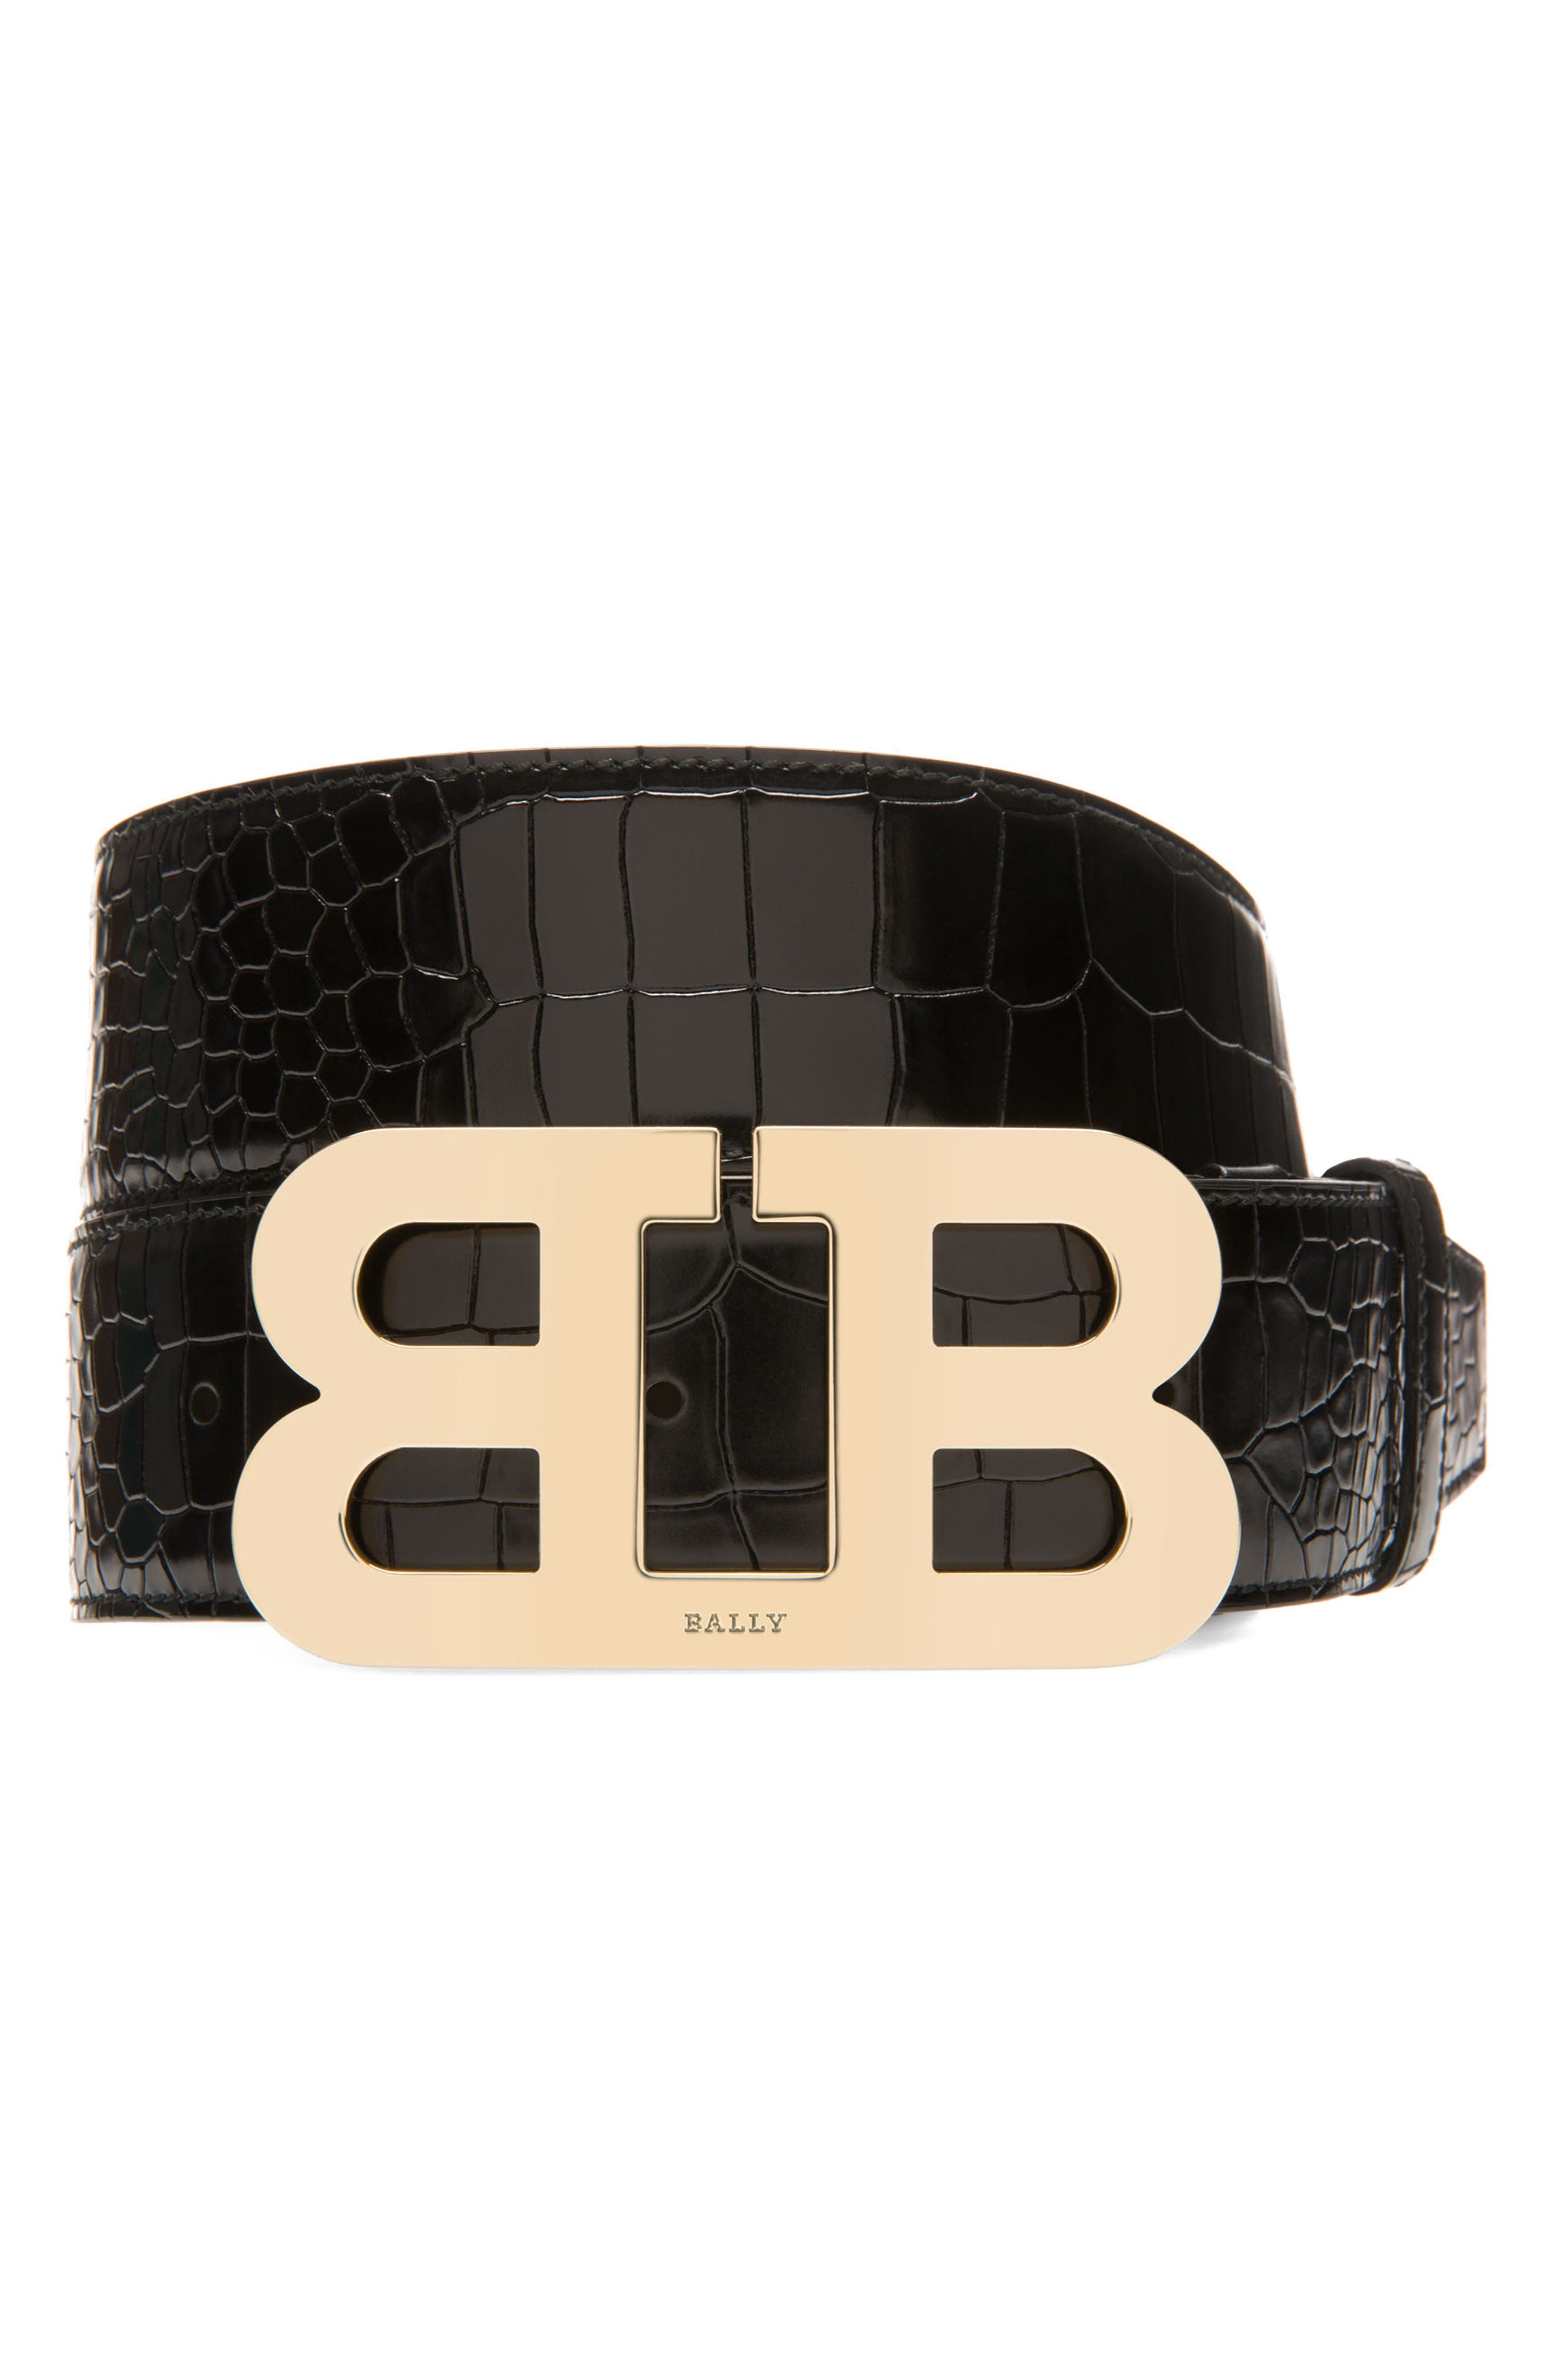 Bally Mirror Buckle Embossed Leather Belt